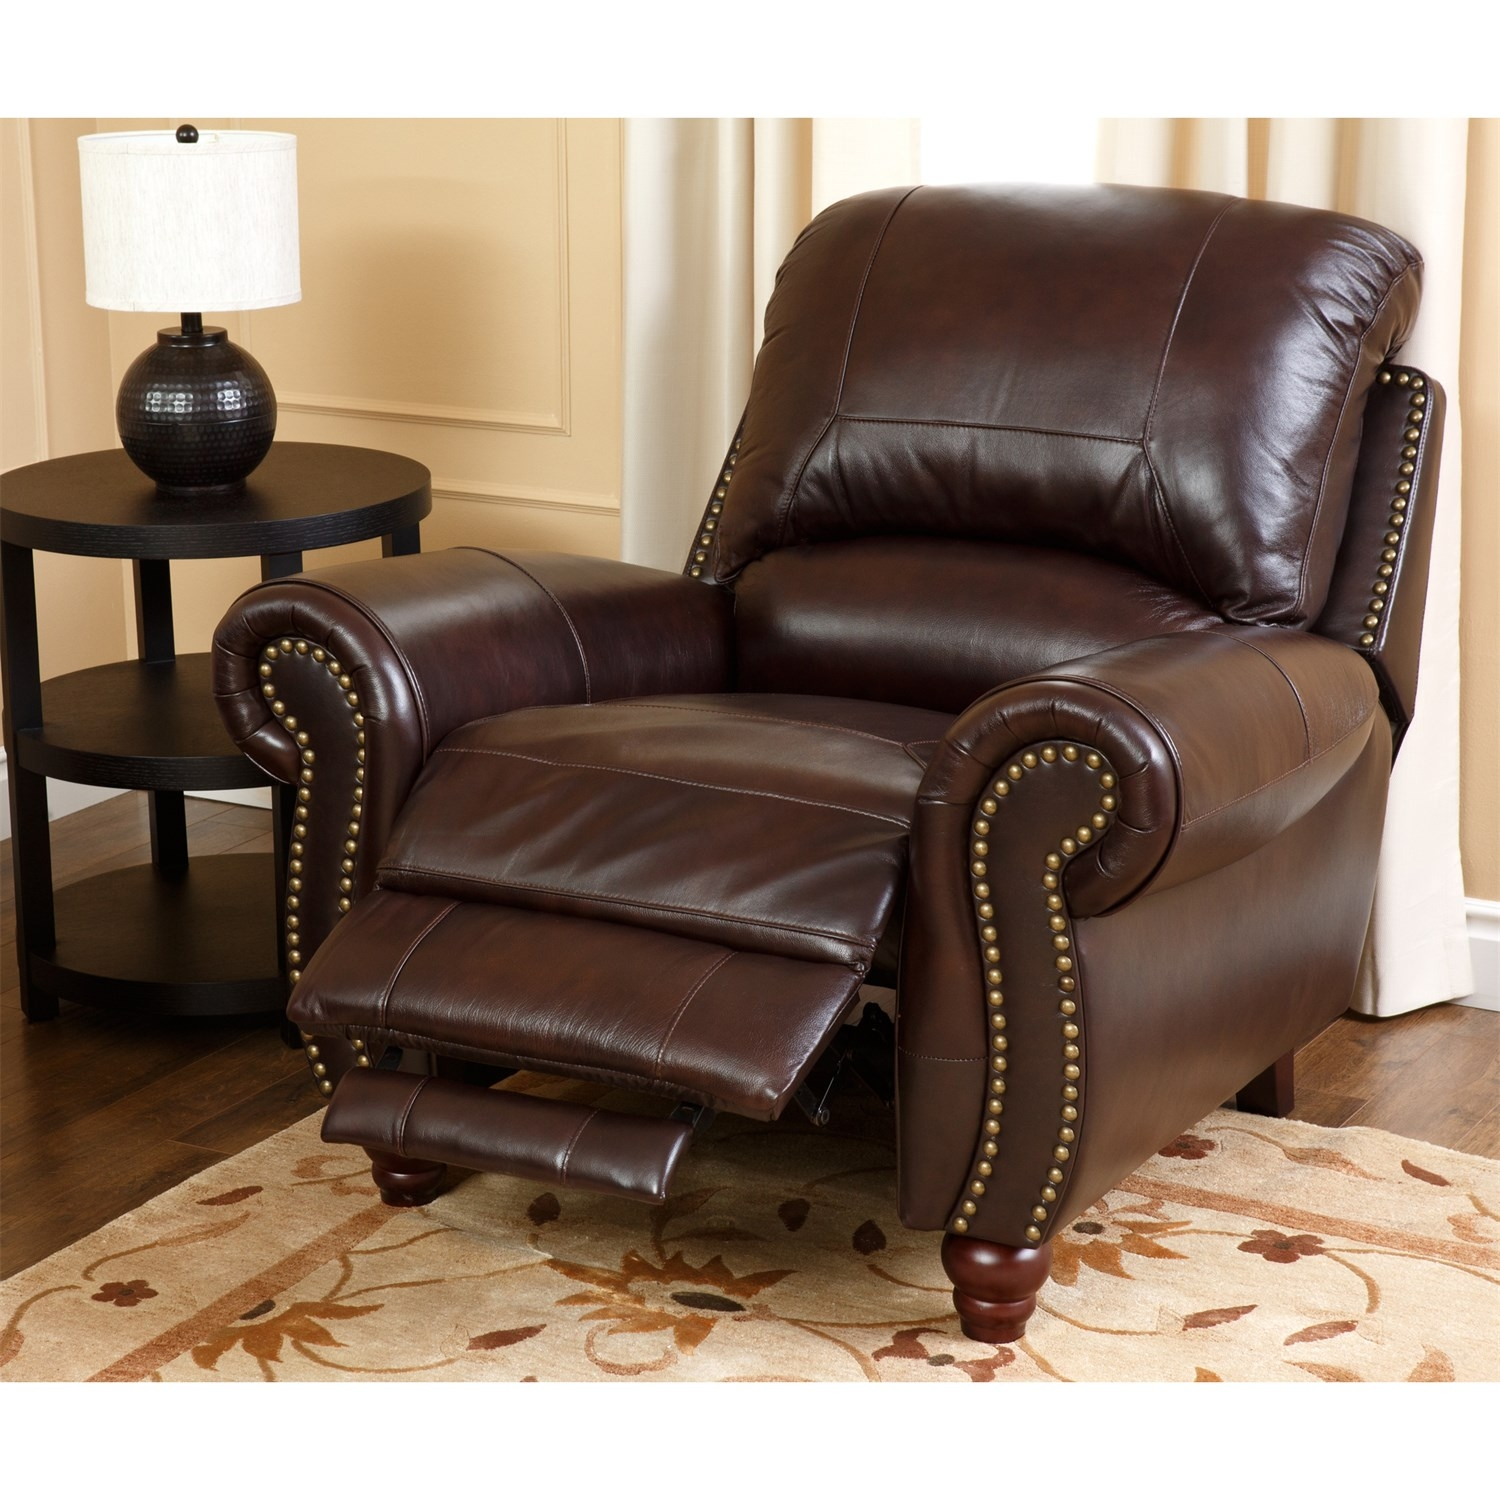 Abson Living Ch 8857 Brg 31 Canterbury Leather Pushback Pertaining To Canterbury Leather Sofas (Image 1 of 15)